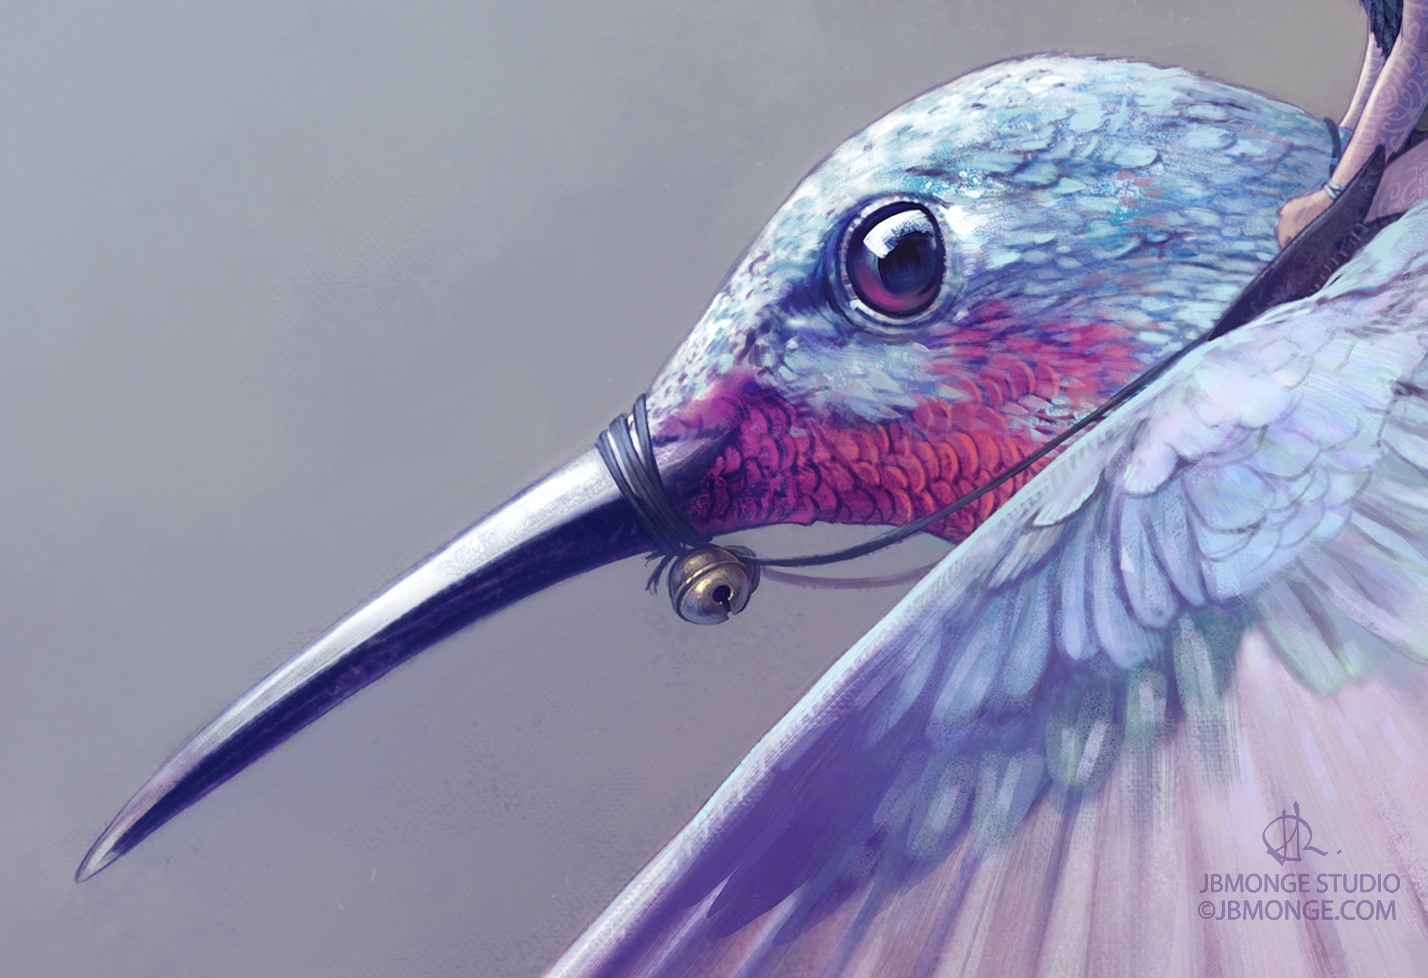 Close-up on the face of the hummingbird